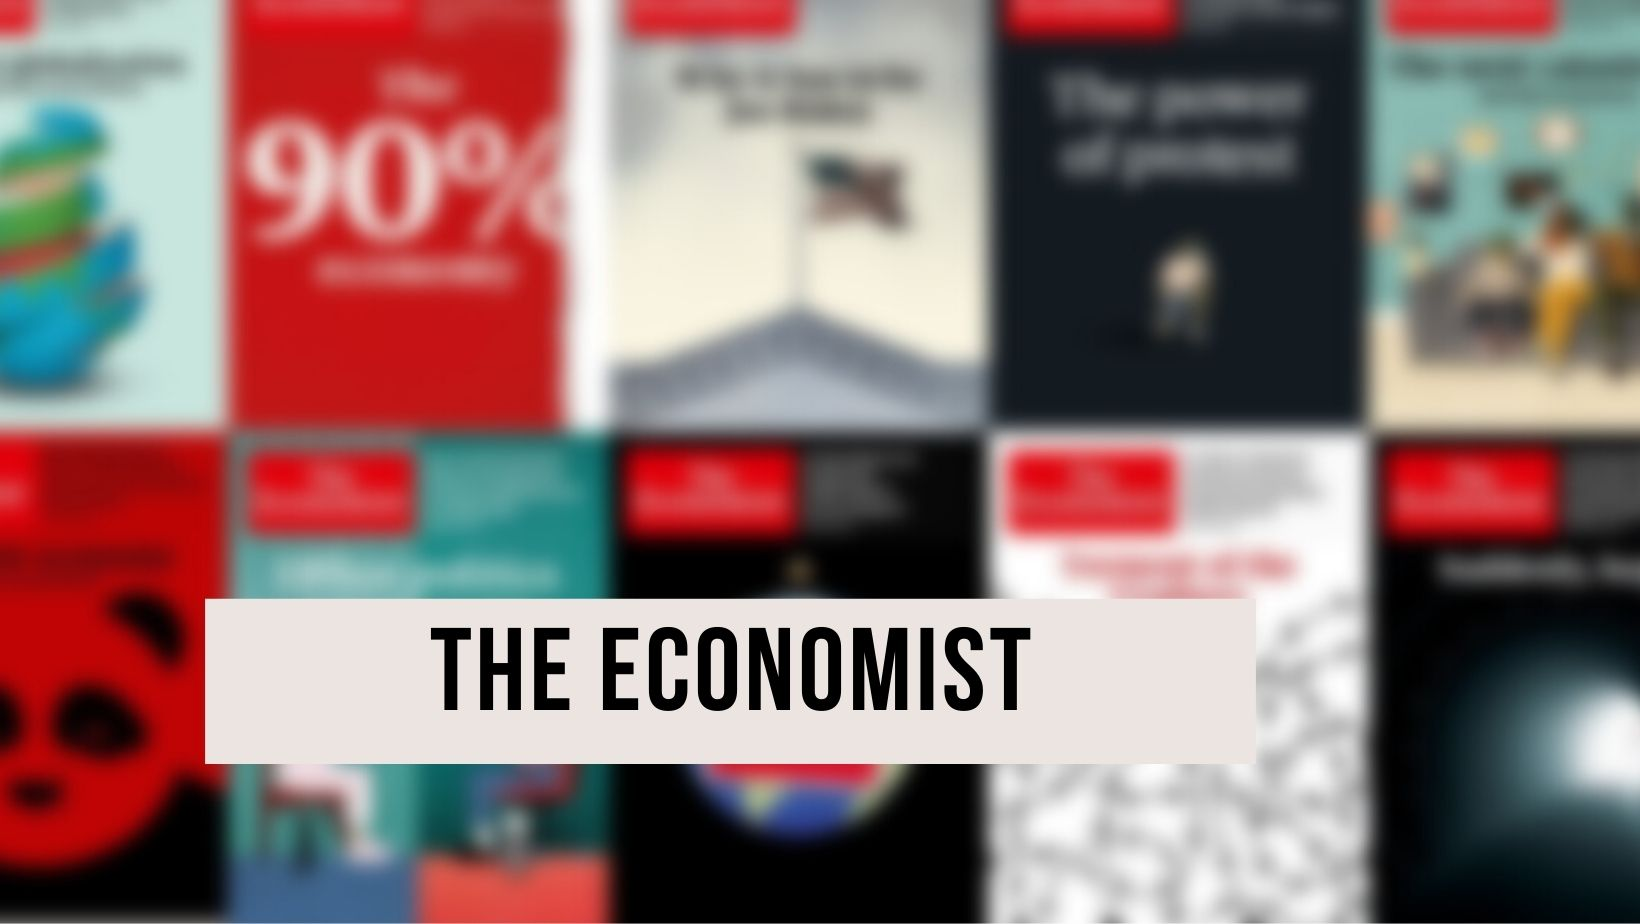 A picture of the Economist